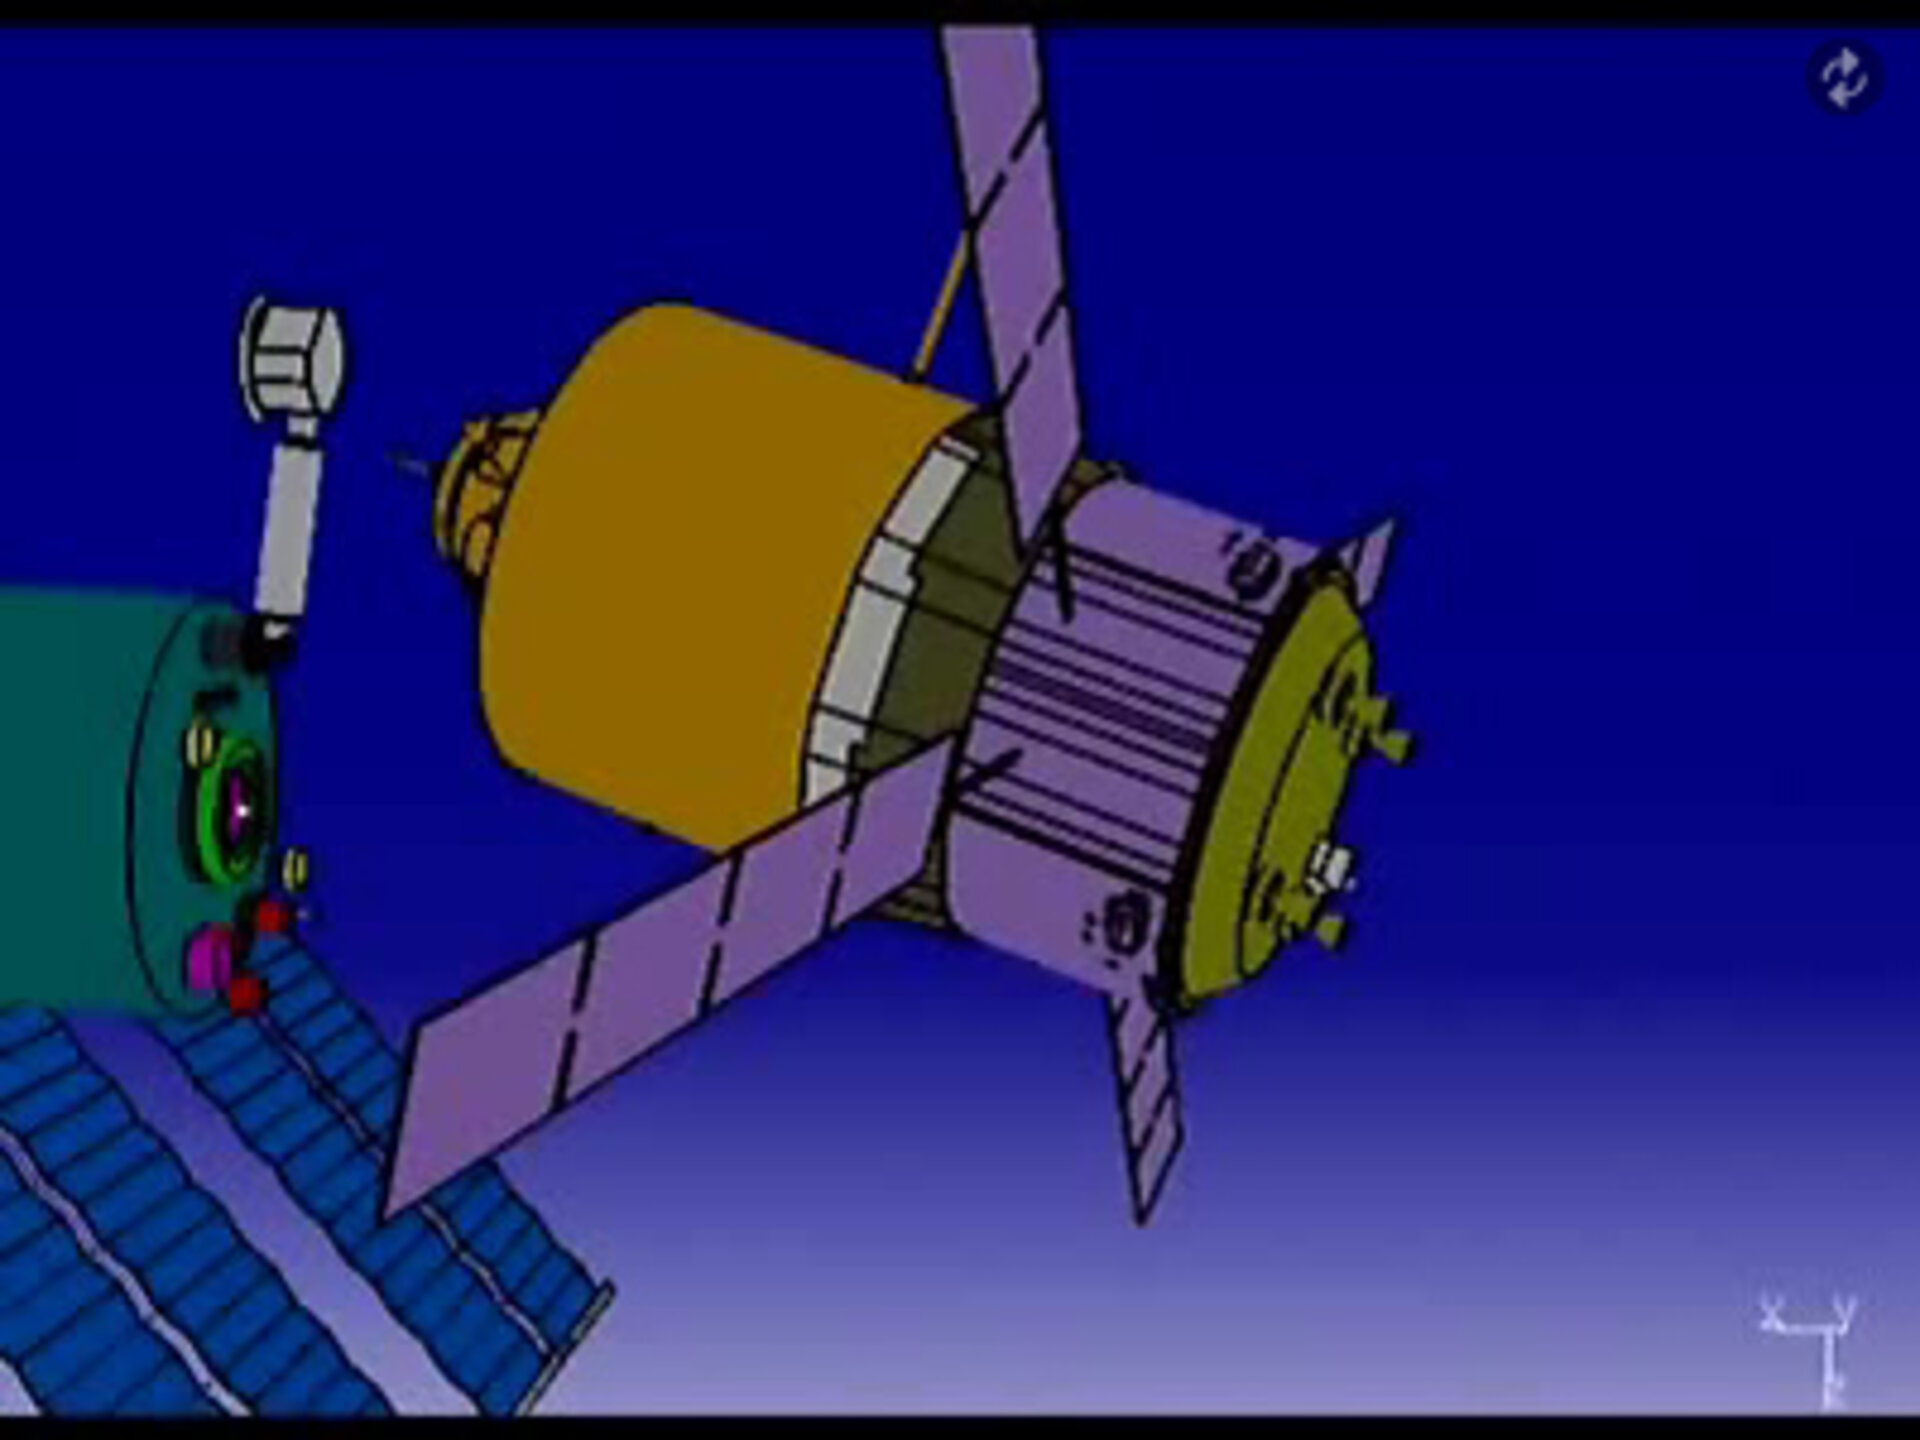 Animation showing the initiation of a Collision Avoidance Manoeuvre - ATV backs away from ISS